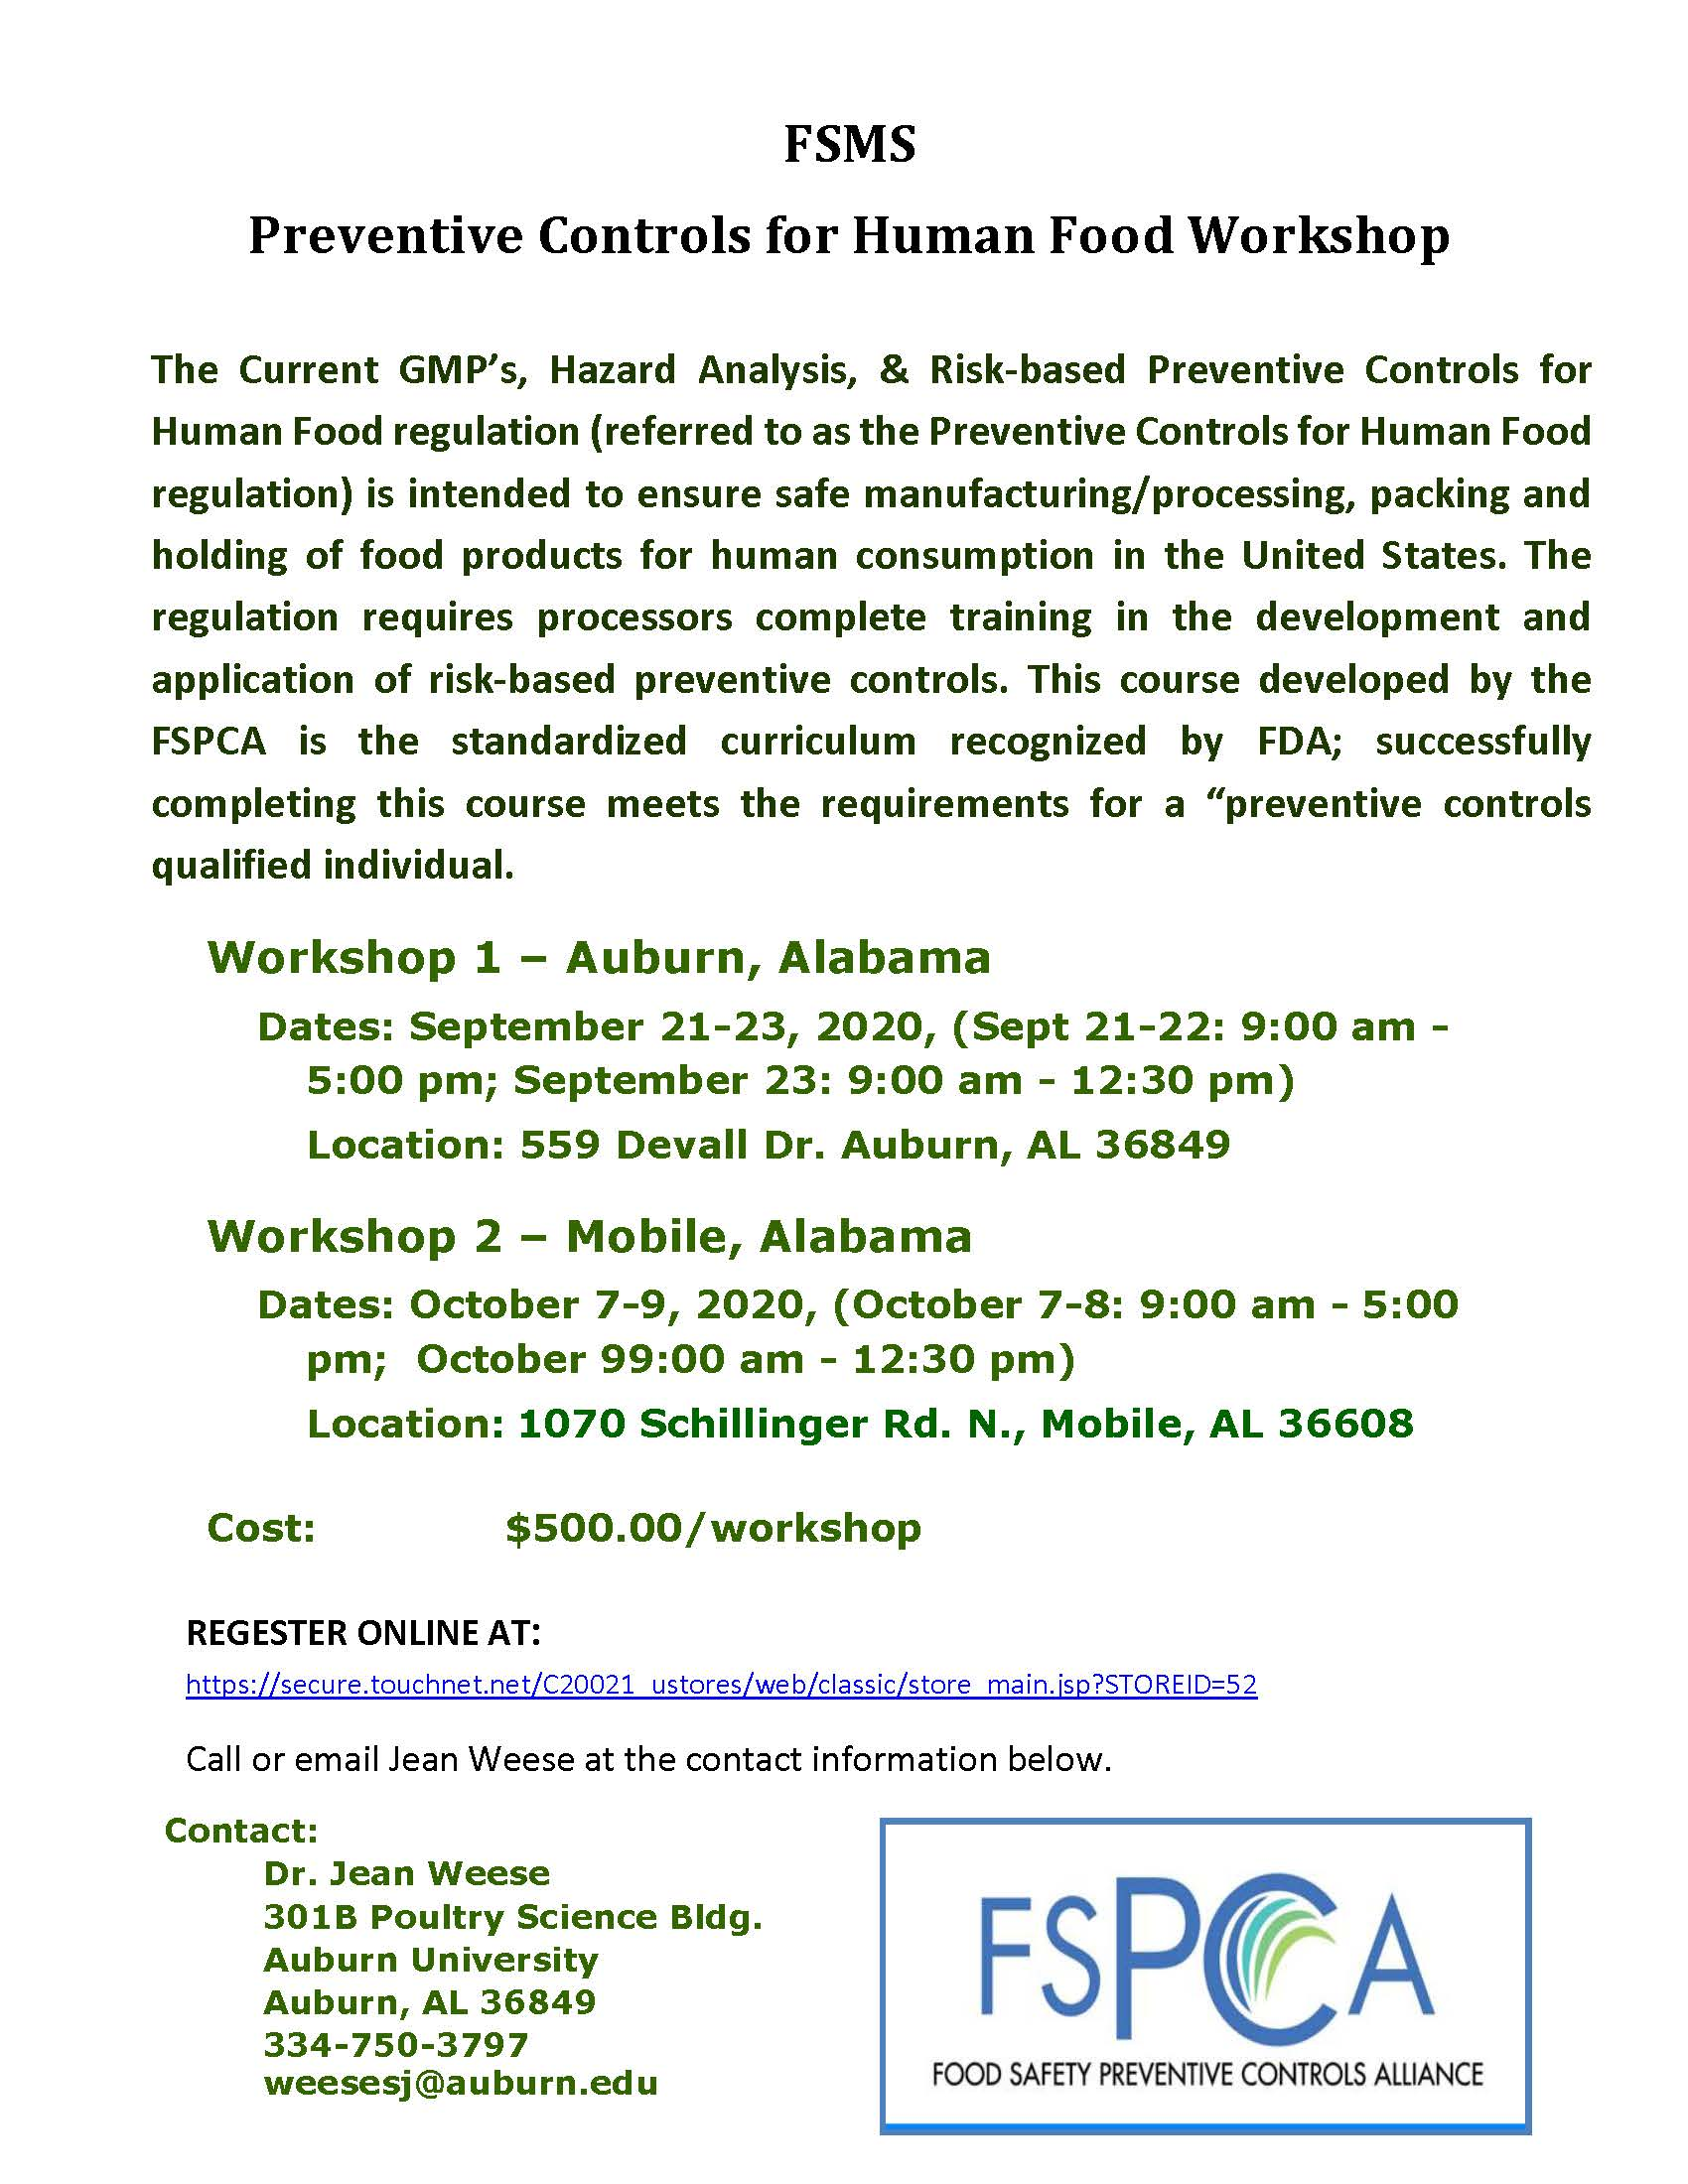 Preventative Controls for Human Foods Workshop